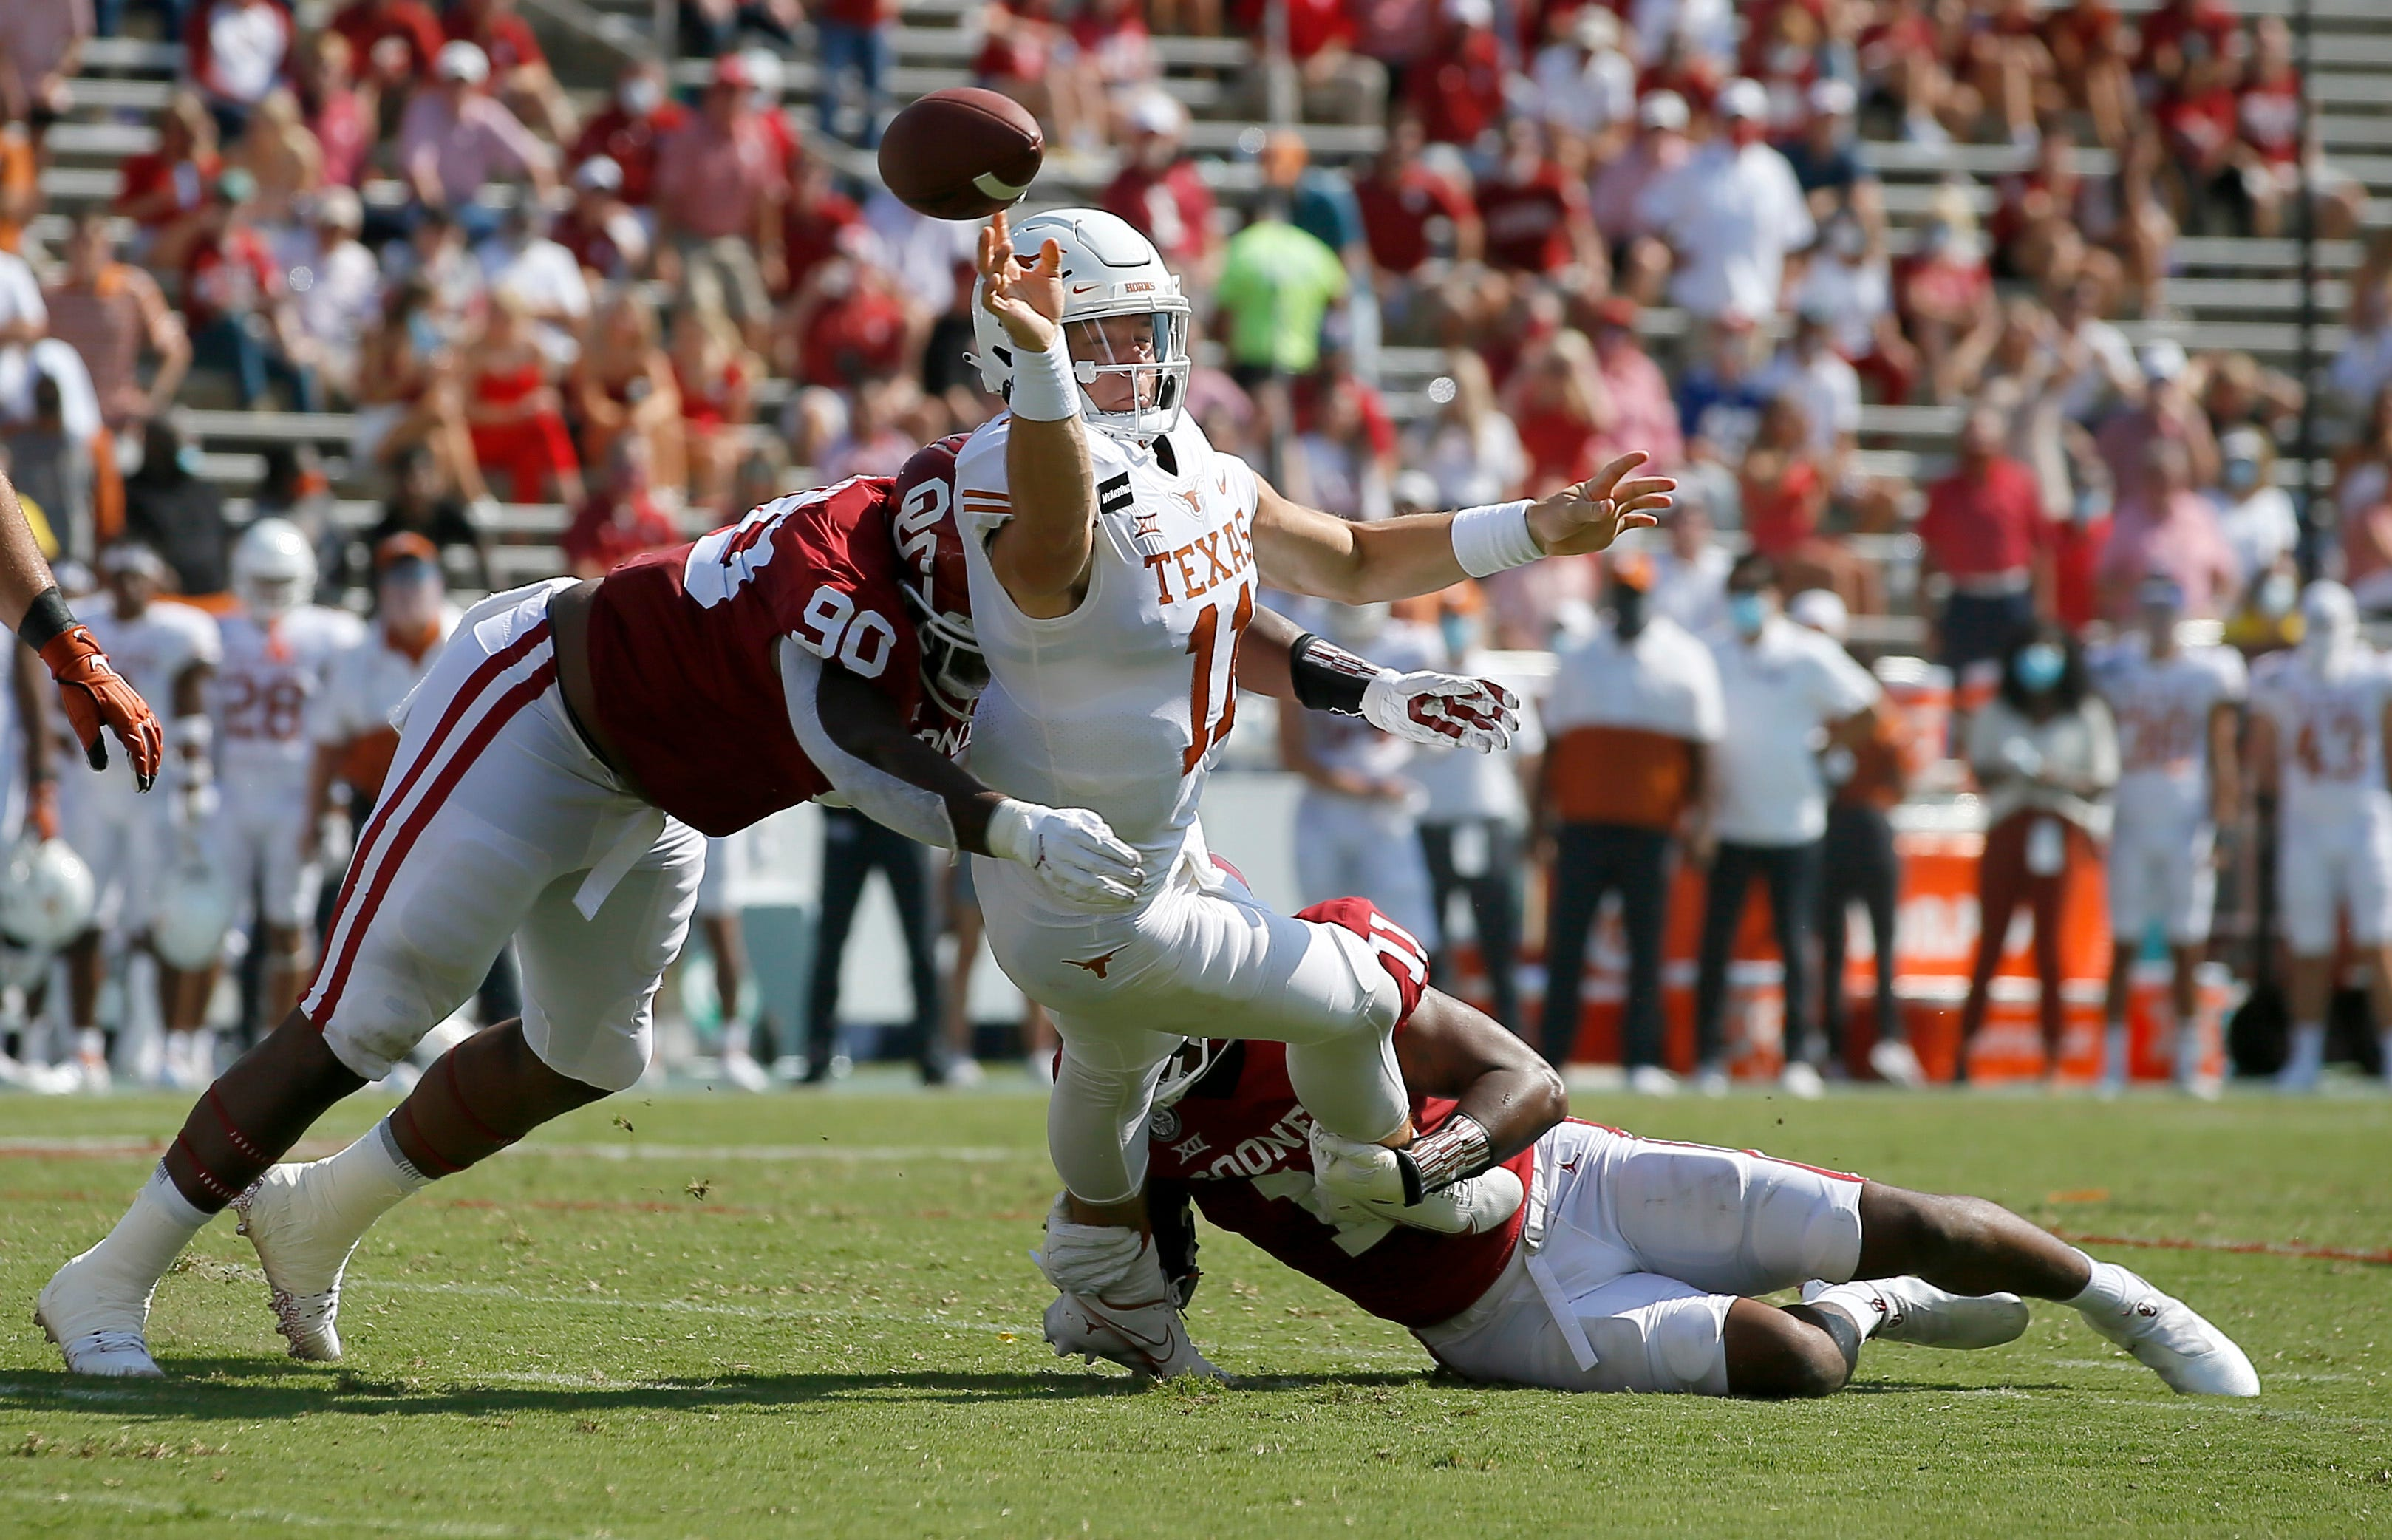 Sam Ehlinger heroics can't do enough to save No. 22 Texas from frustrating loss to Oklahoma